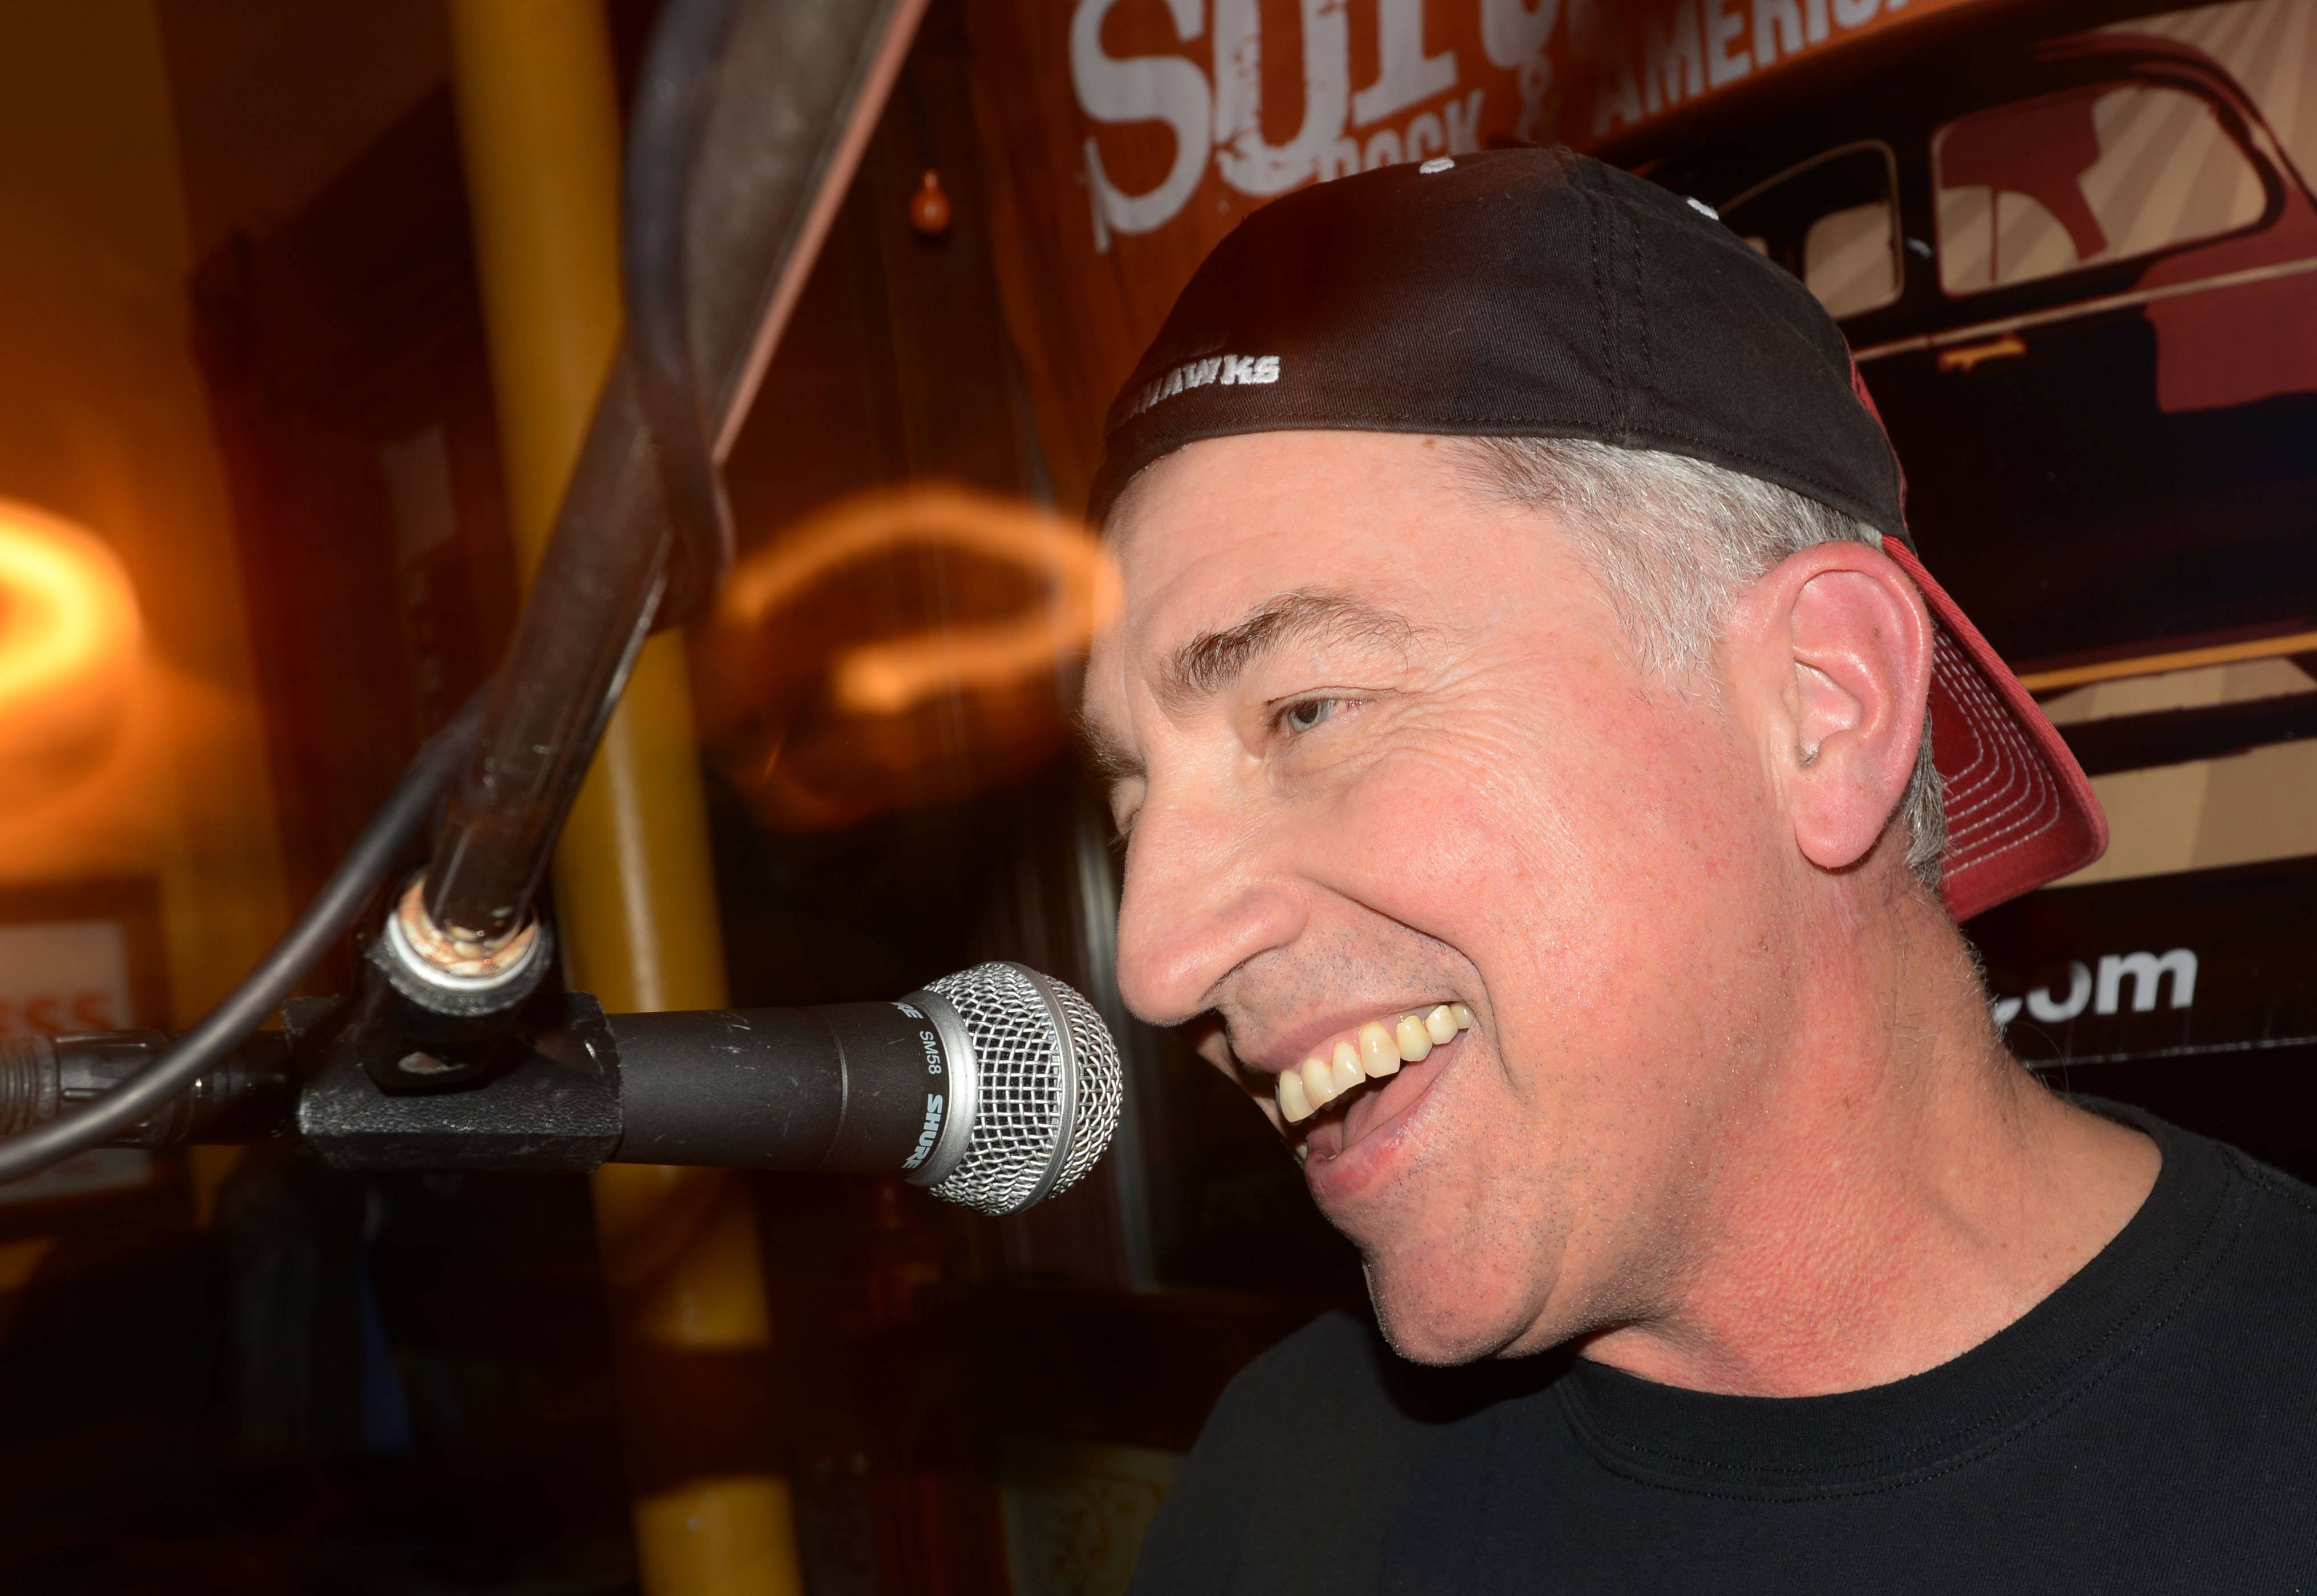 Drummer Steve Mores performs at Quigley's Irish Pub in Naperville with his band, the Prairie Surfers, a few months after having a new type of surgery to remove a tumor at his brain stem that was causing facial numbness, nausea and balance problems.